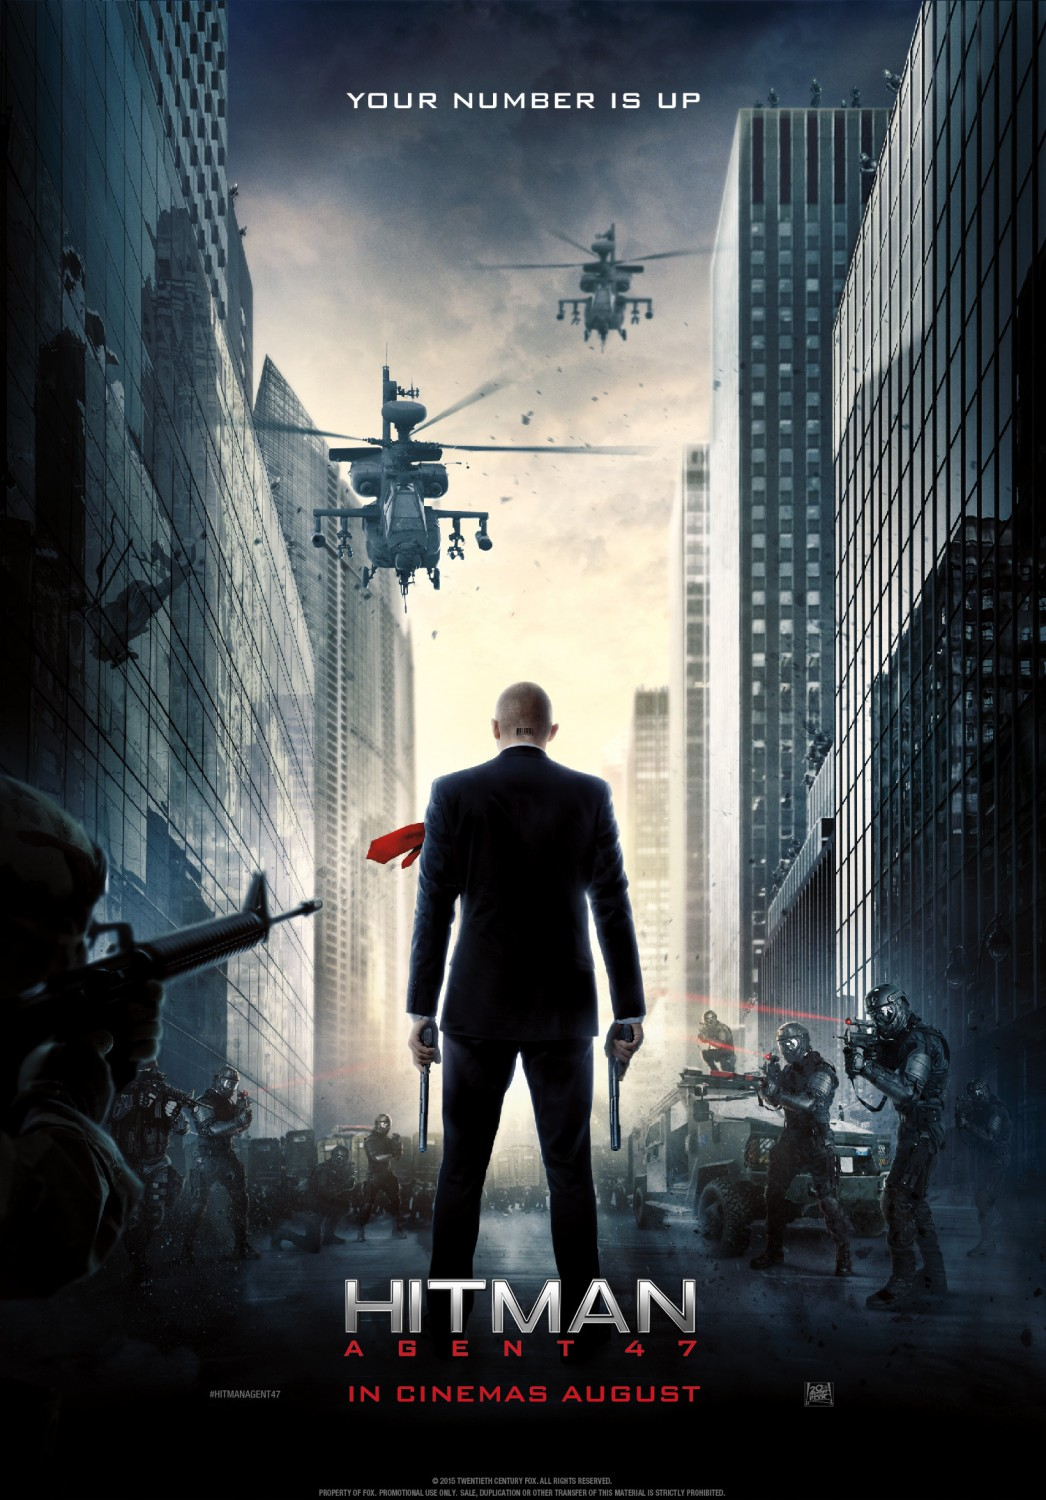 Hitman Agent 47 film review: hit or miss?